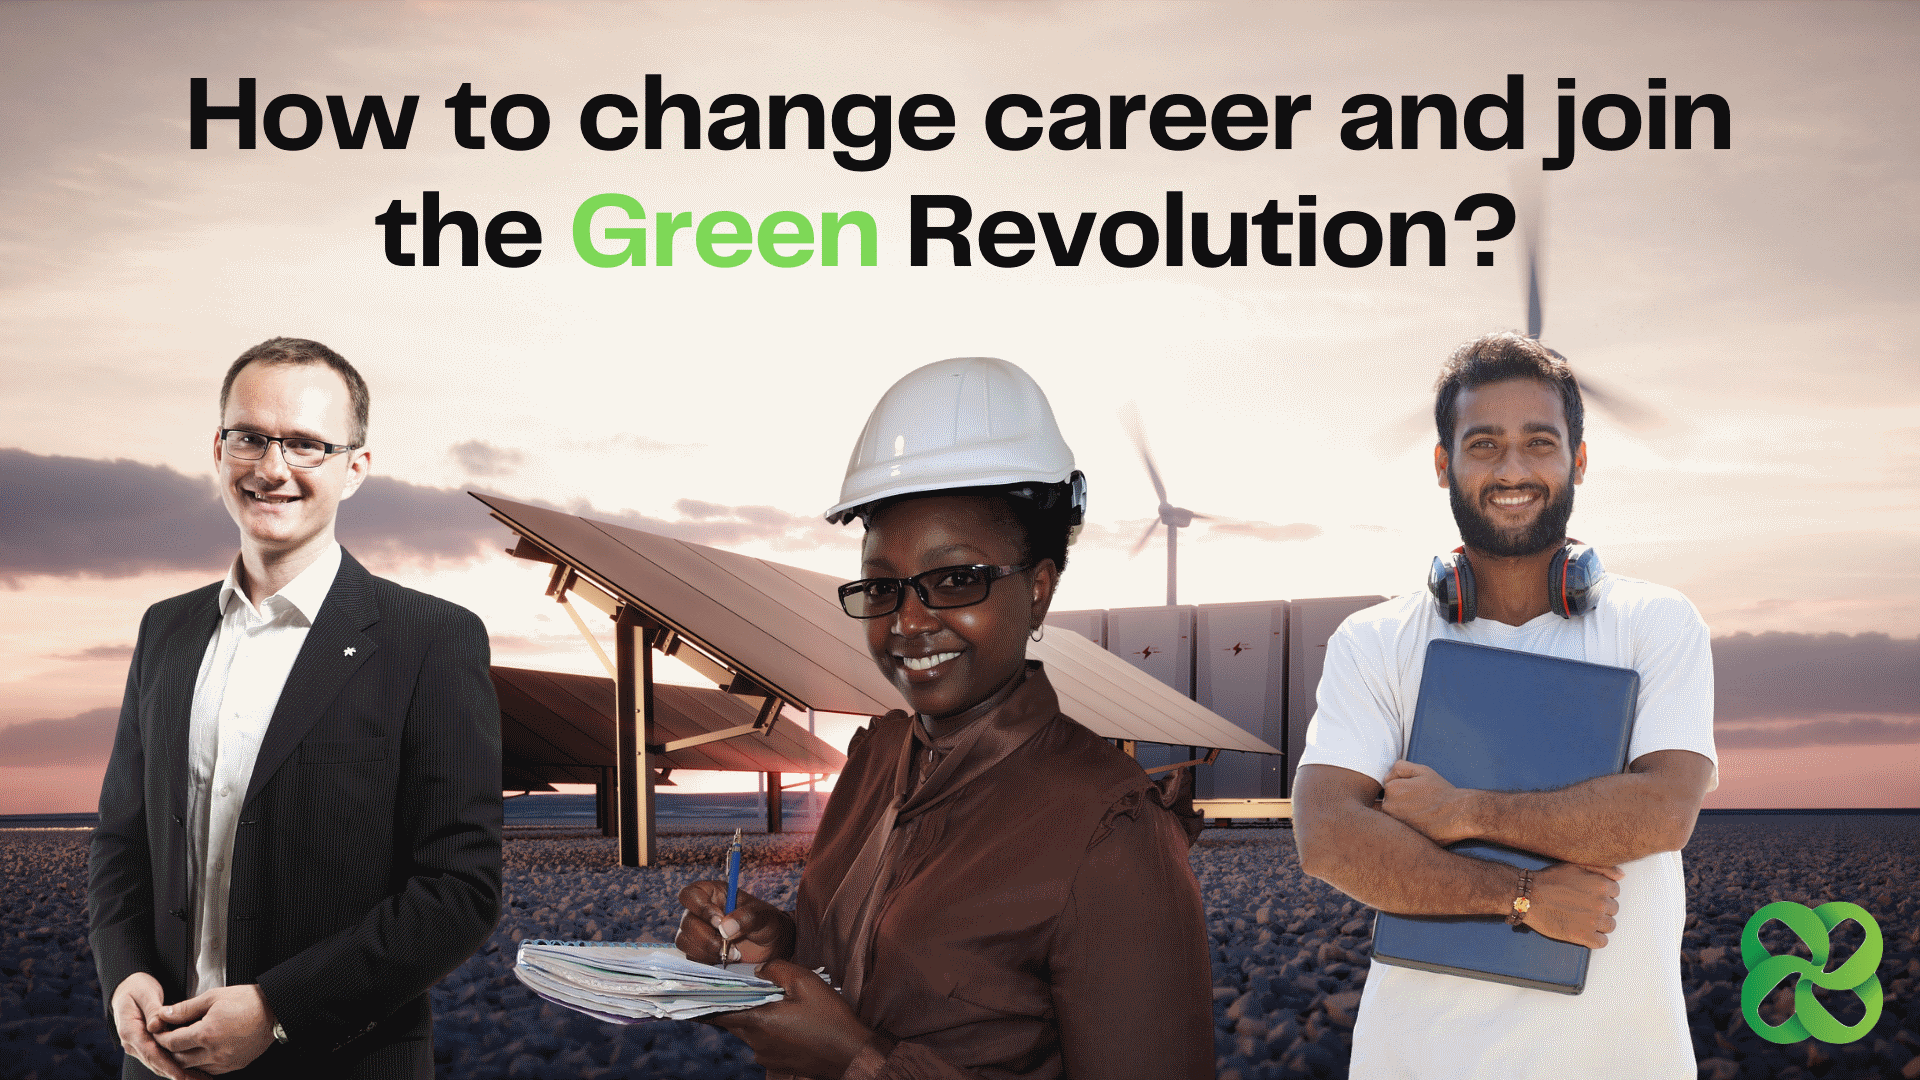 How change career and join the Green Revolution Thumbnail v2 - Home